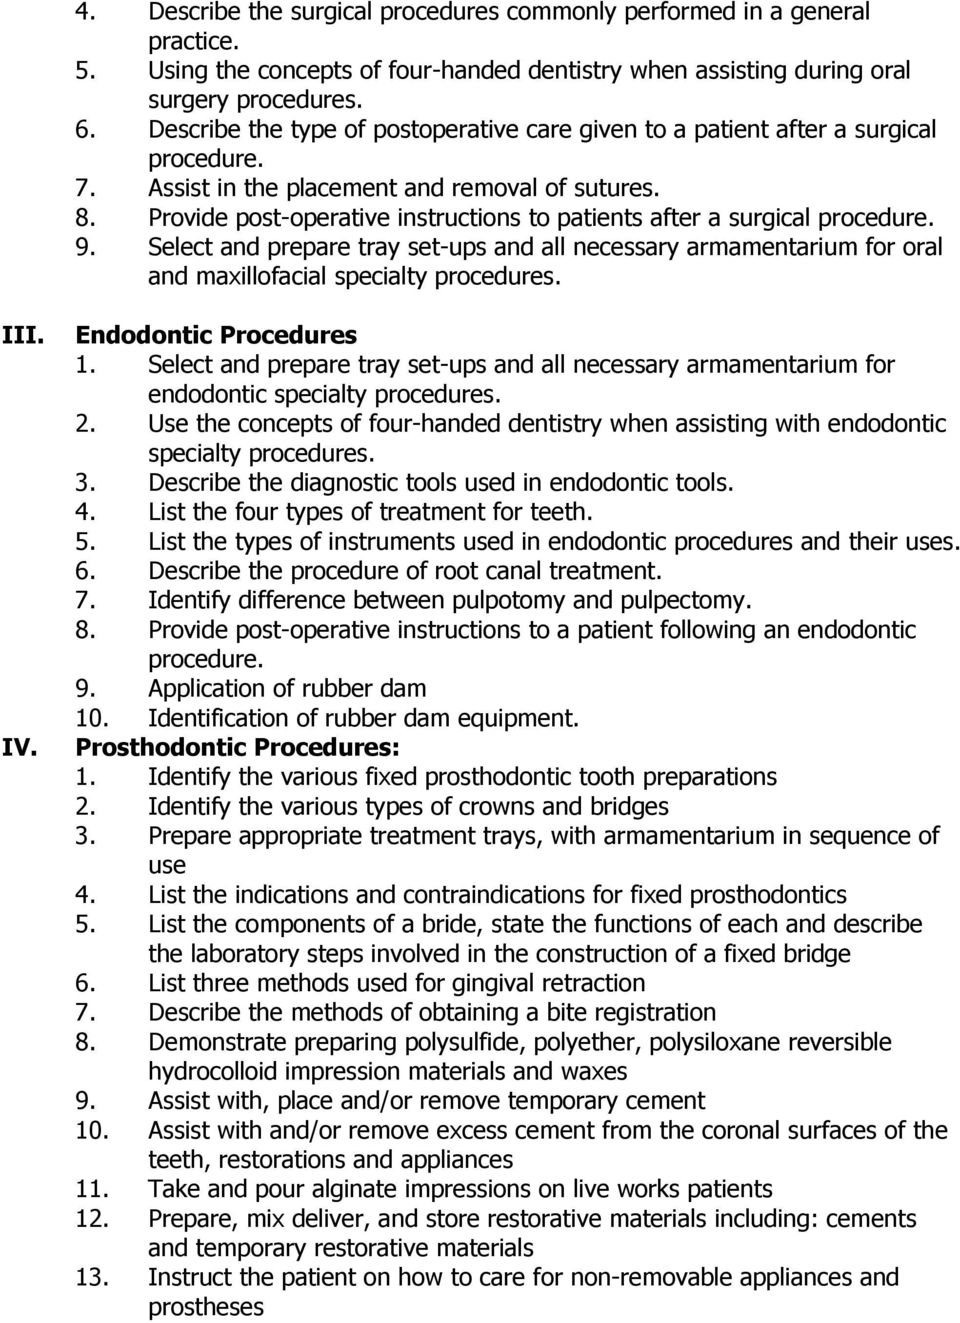 Provide post-operative instructions to patients after a surgical procedure. 9. Select and prepare tray set-ups and all necessary armamentarium for oral and maxillofacial specialty procedures. III. IV.